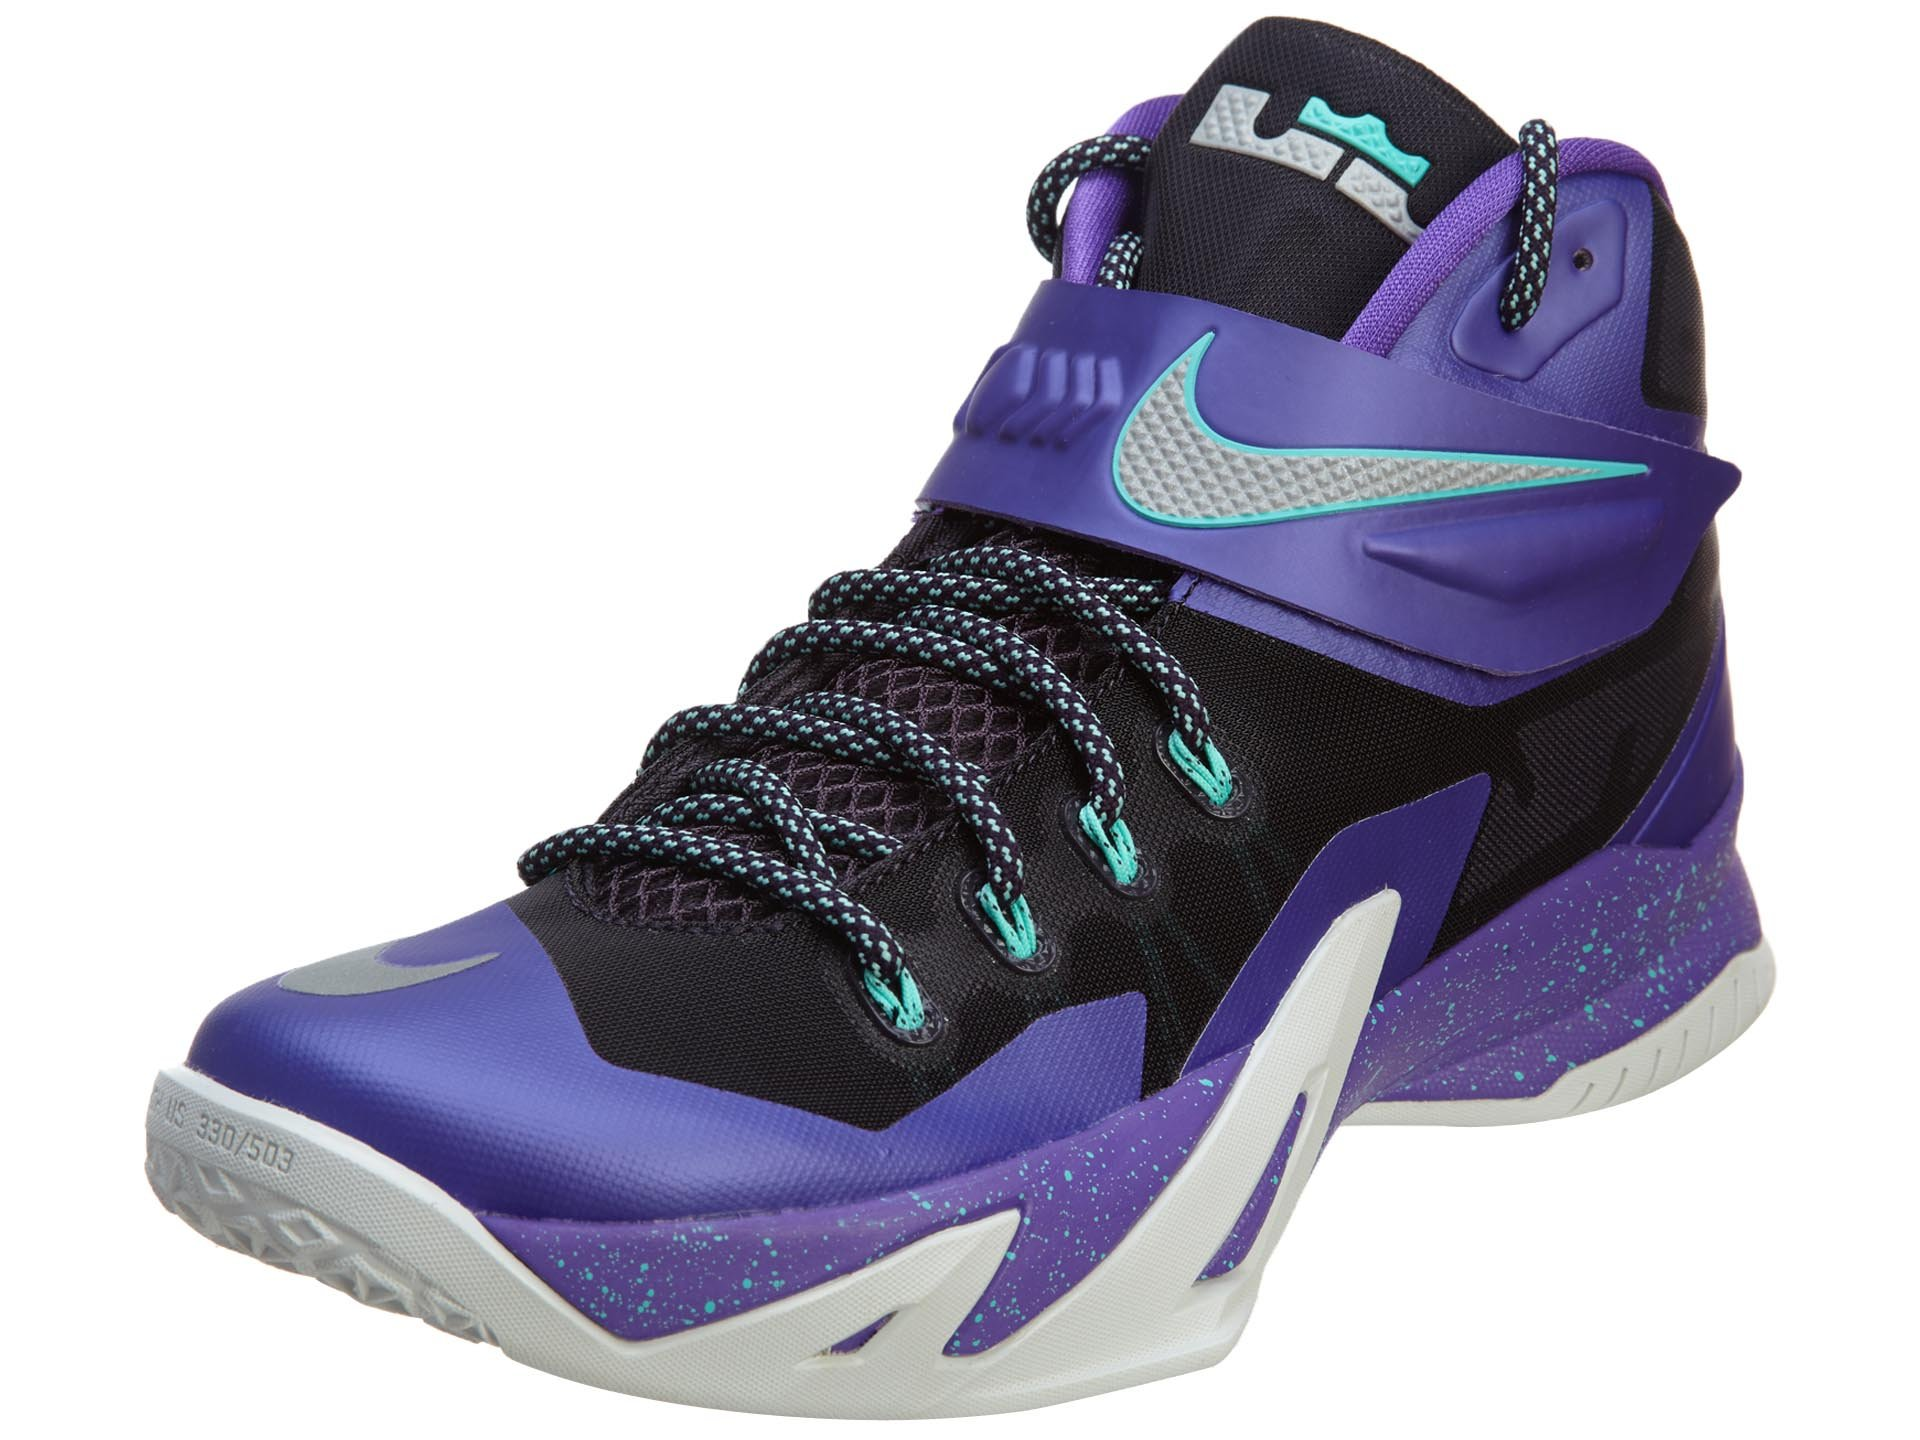 Men's Nike Zoom Soldier VIII Basketball Shoe